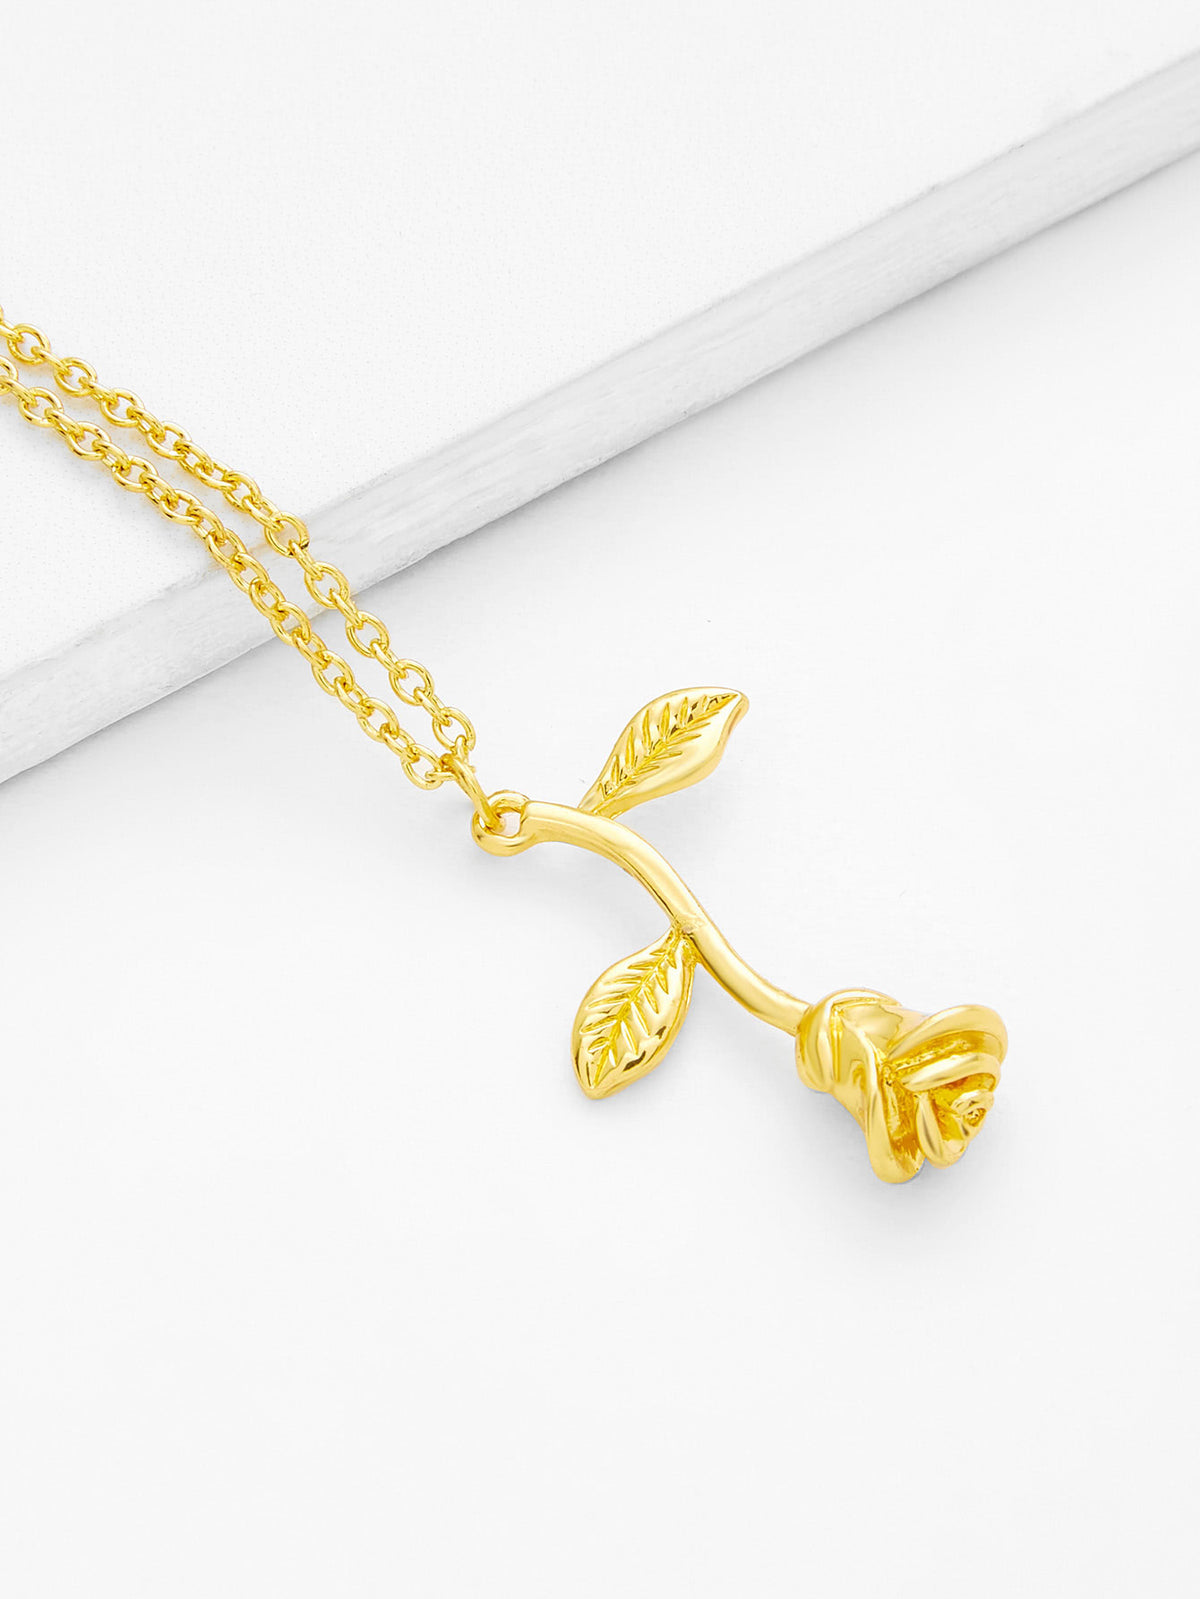 Metal Flower Pendant Chain Necklace